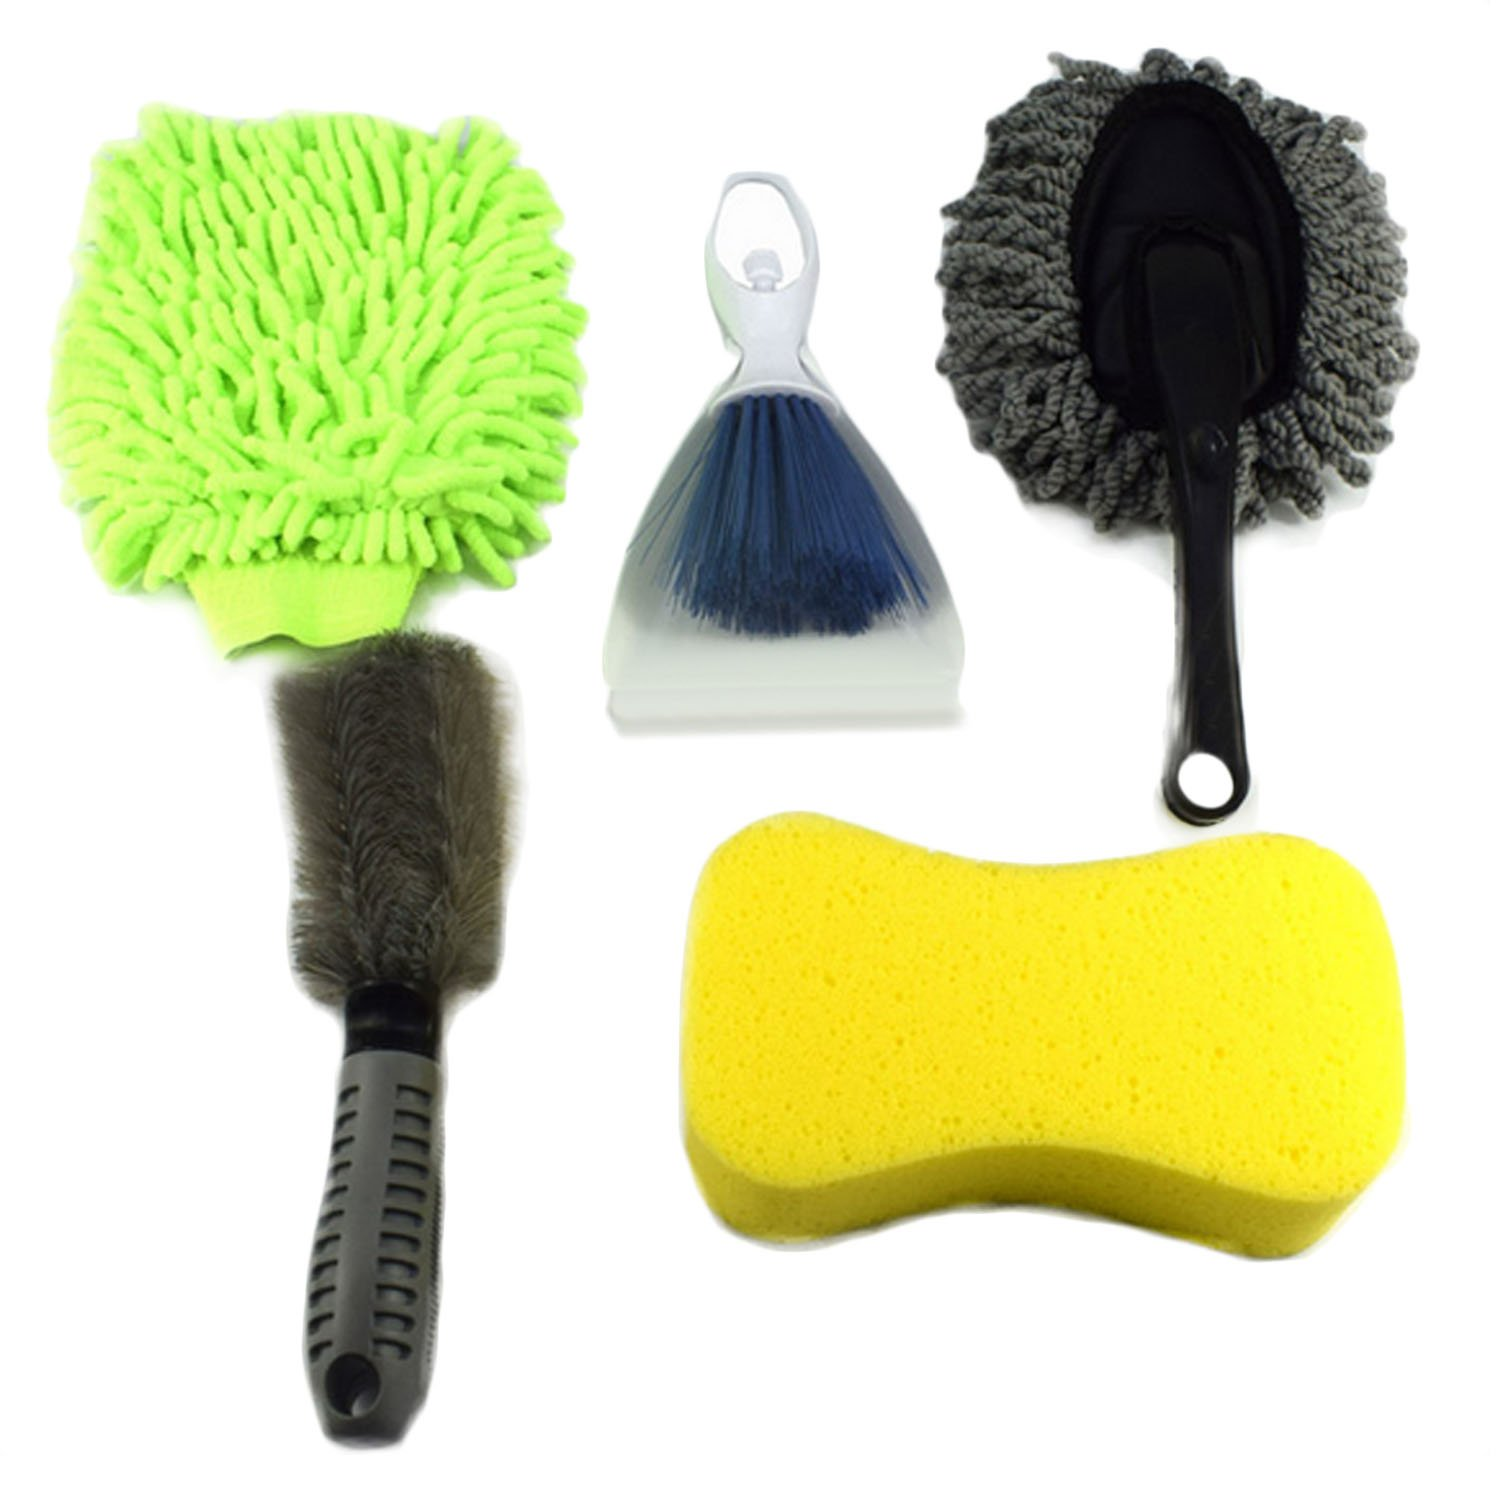 Car Clean Brush, Elisoan [5 PCS] Complete Car Cleaning Washing Tools Kit Microfiber Car Wash Duster Brush Wheel Cleaning Brush Glove Sponge Elisona